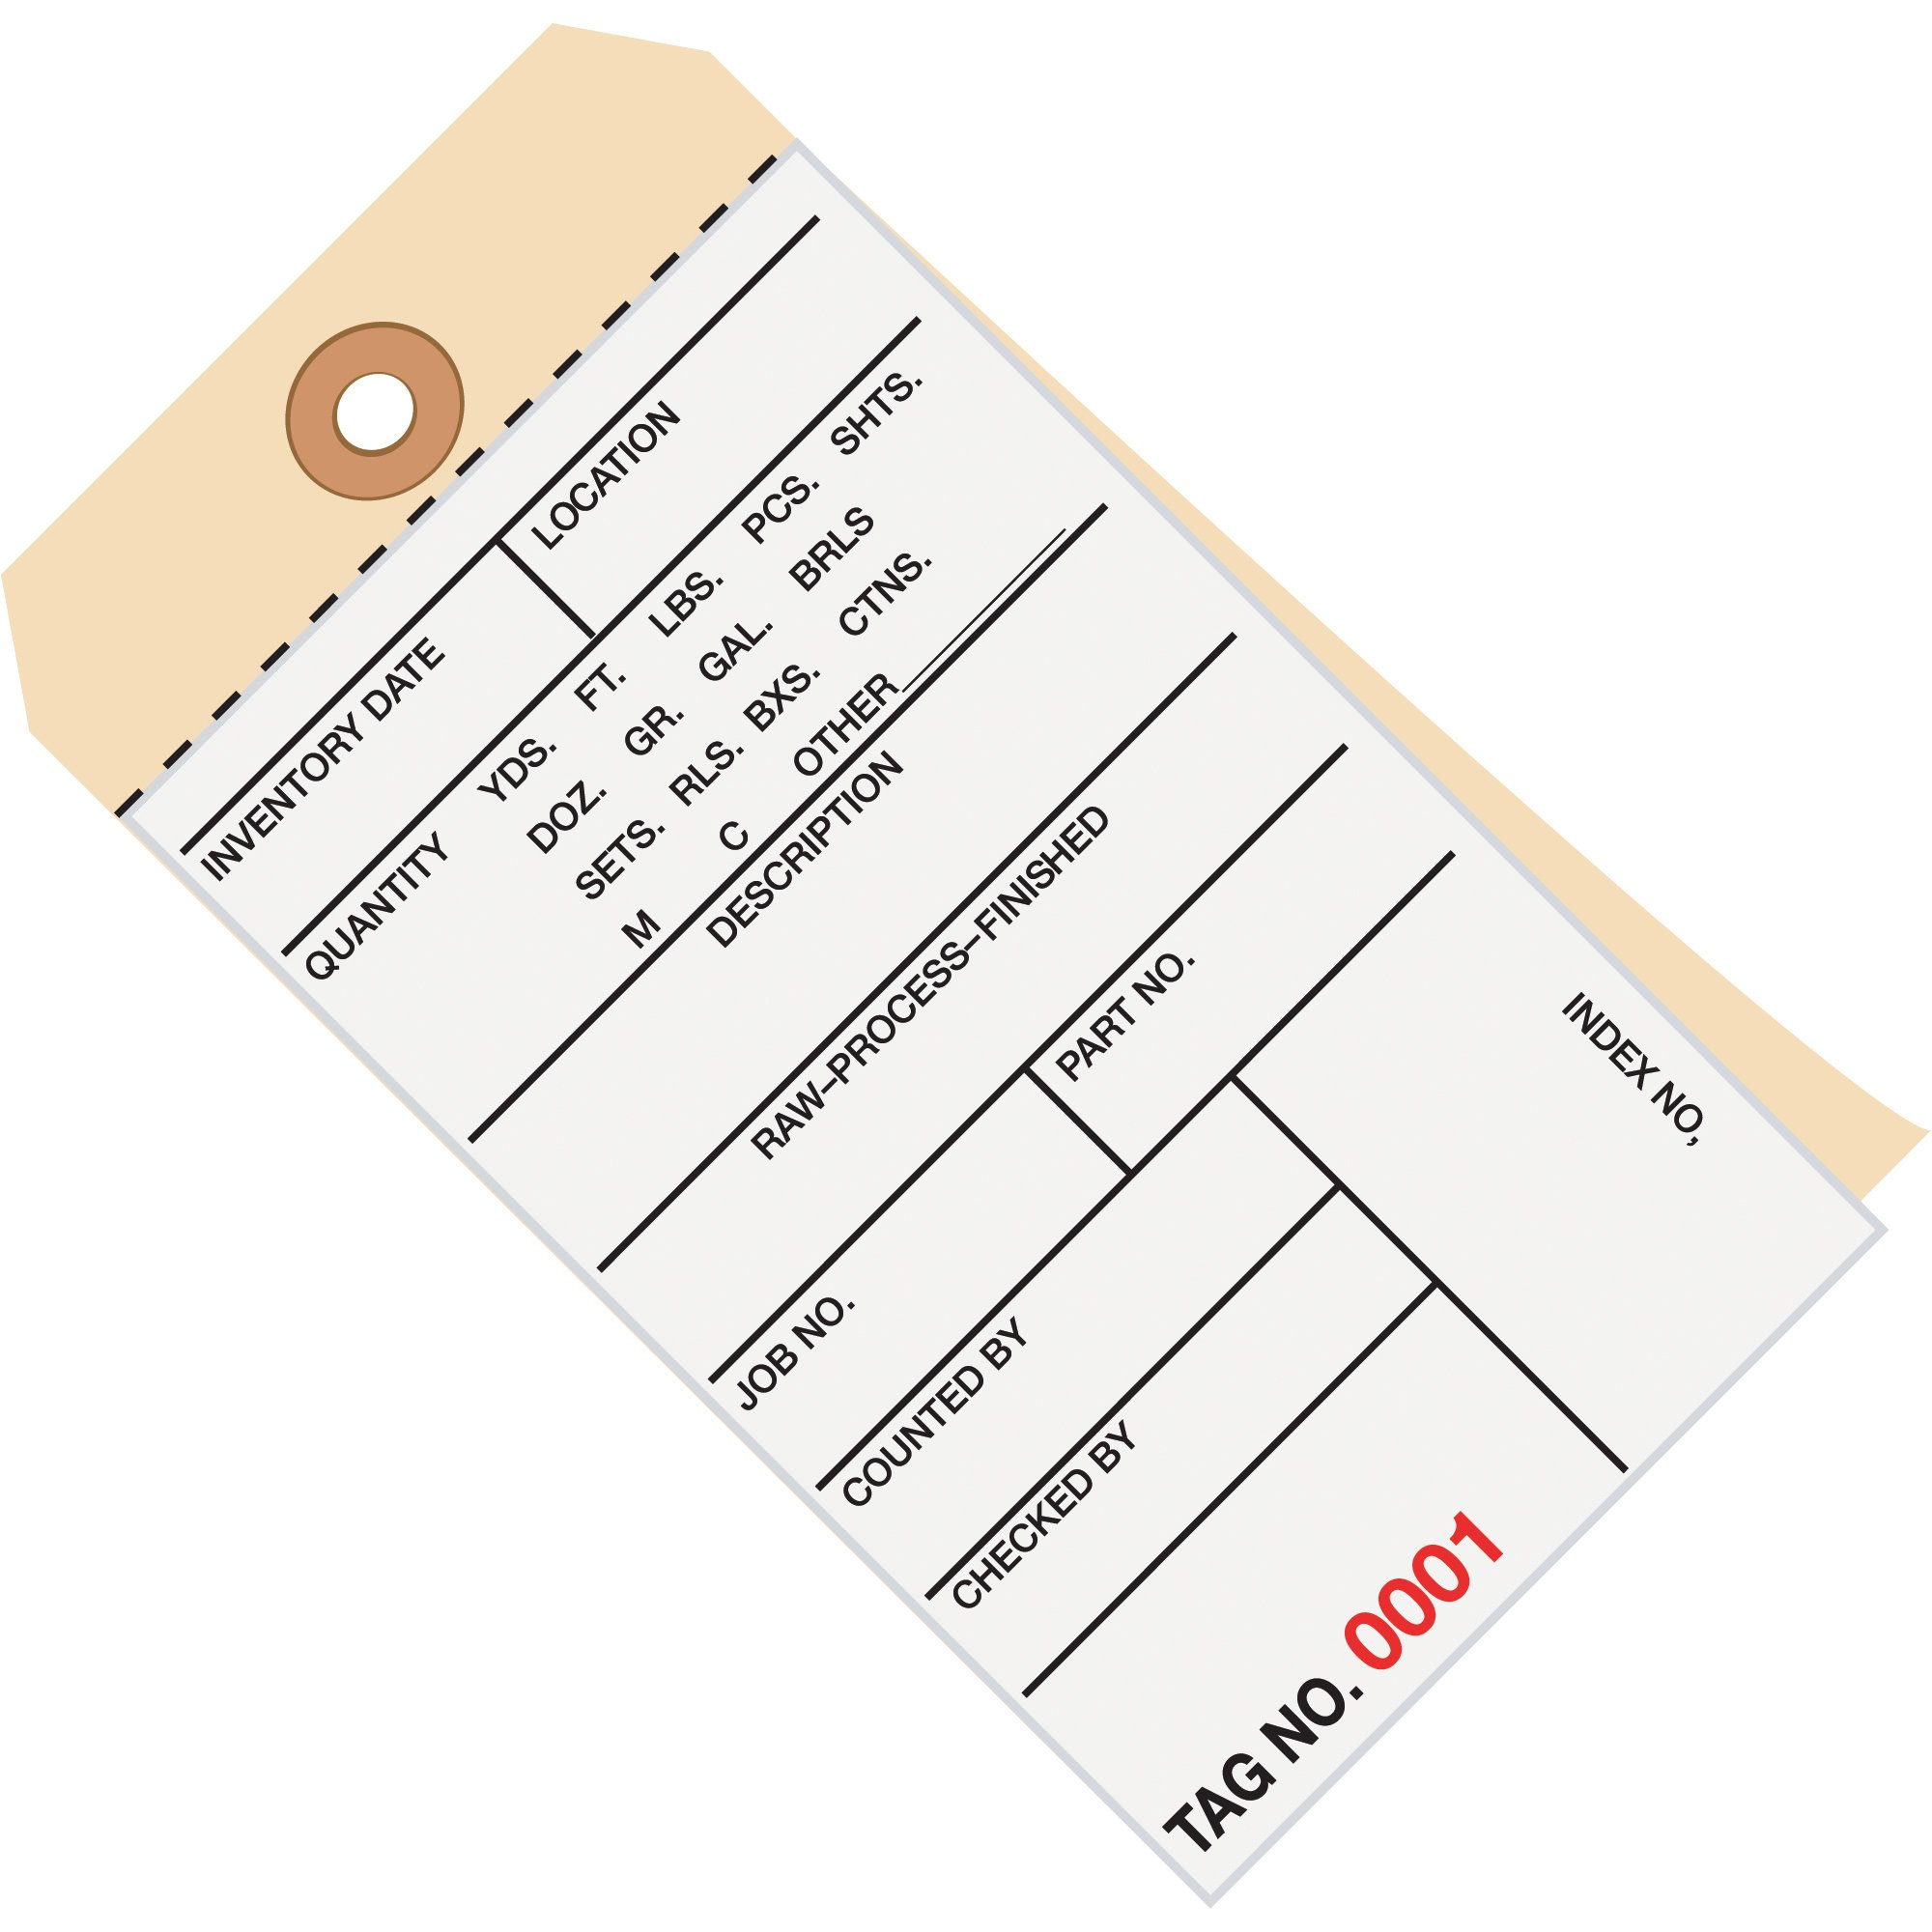 Aviditi G15141 2 Part Carbonless #8 Inventory Tag, 6-1/4'' Length x 3-1/8'' Width, 6500-6999 Numbering, White/Manila (Case of 500)